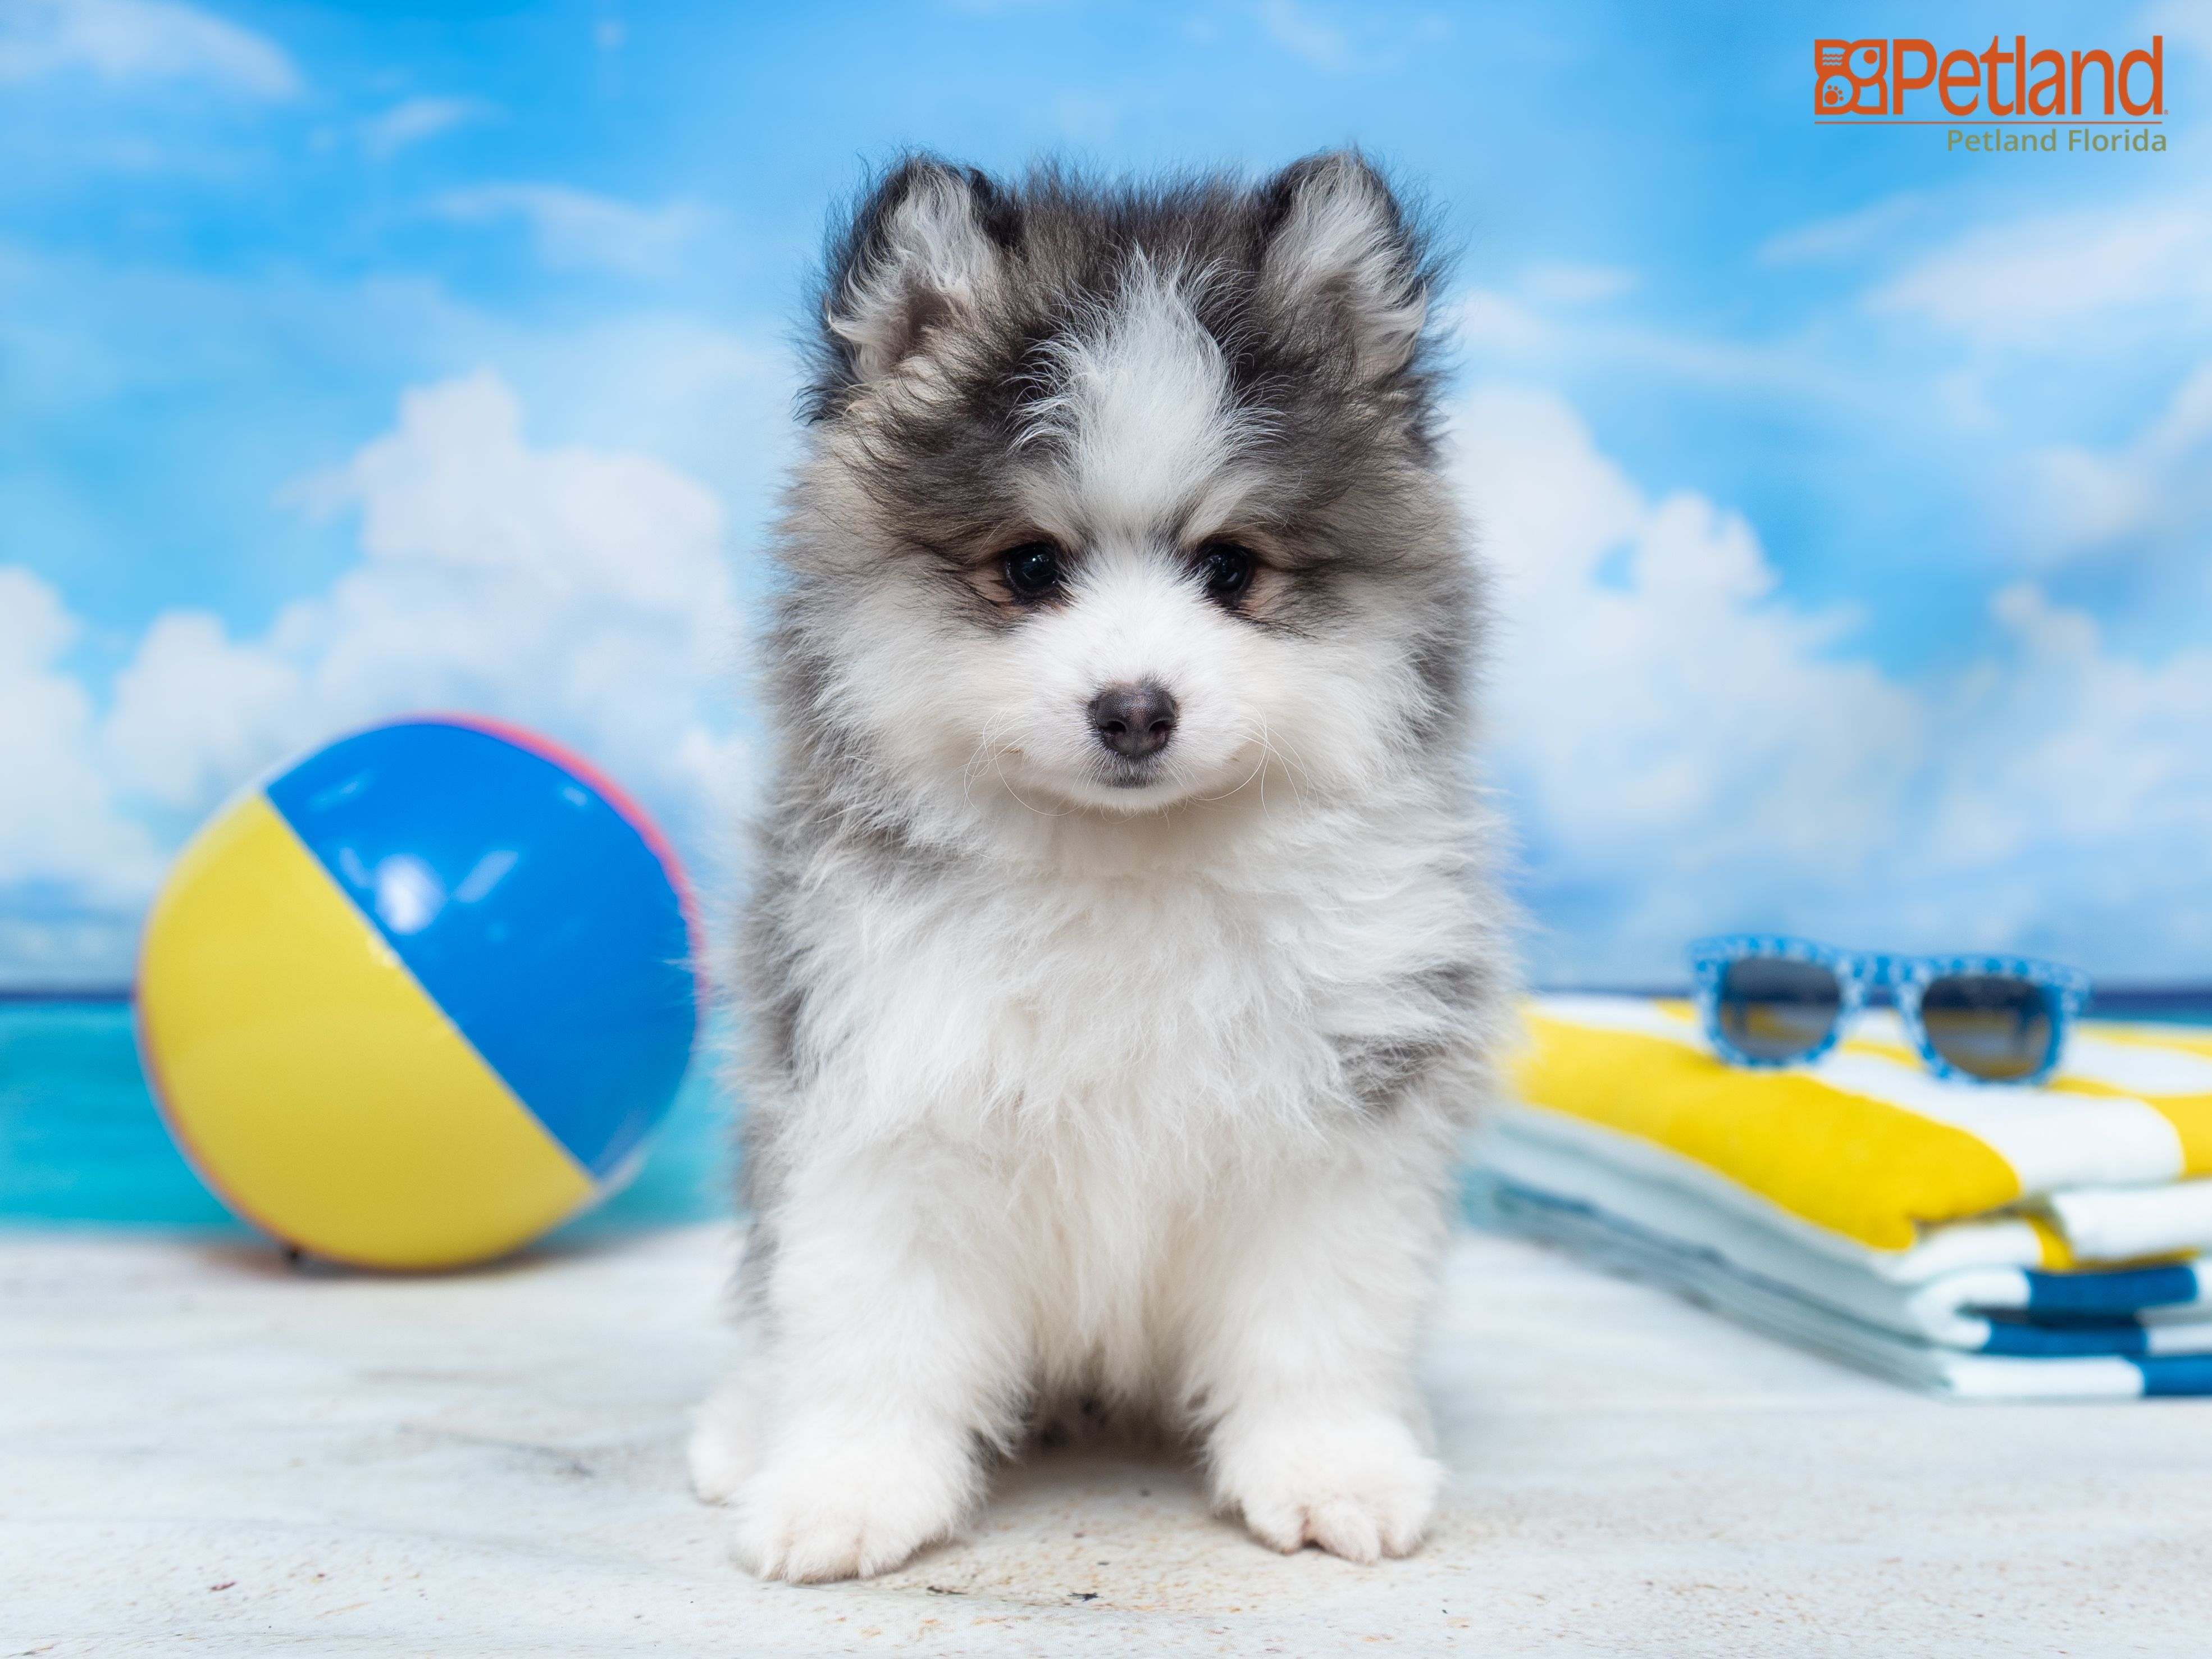 Petland Florida Has Pomsky Puppies For Sale Check Out All Our Available Puppies Pomsky Puppy Doglover Adorable Do In 2020 Pomsky Puppies Puppy Friends Puppies